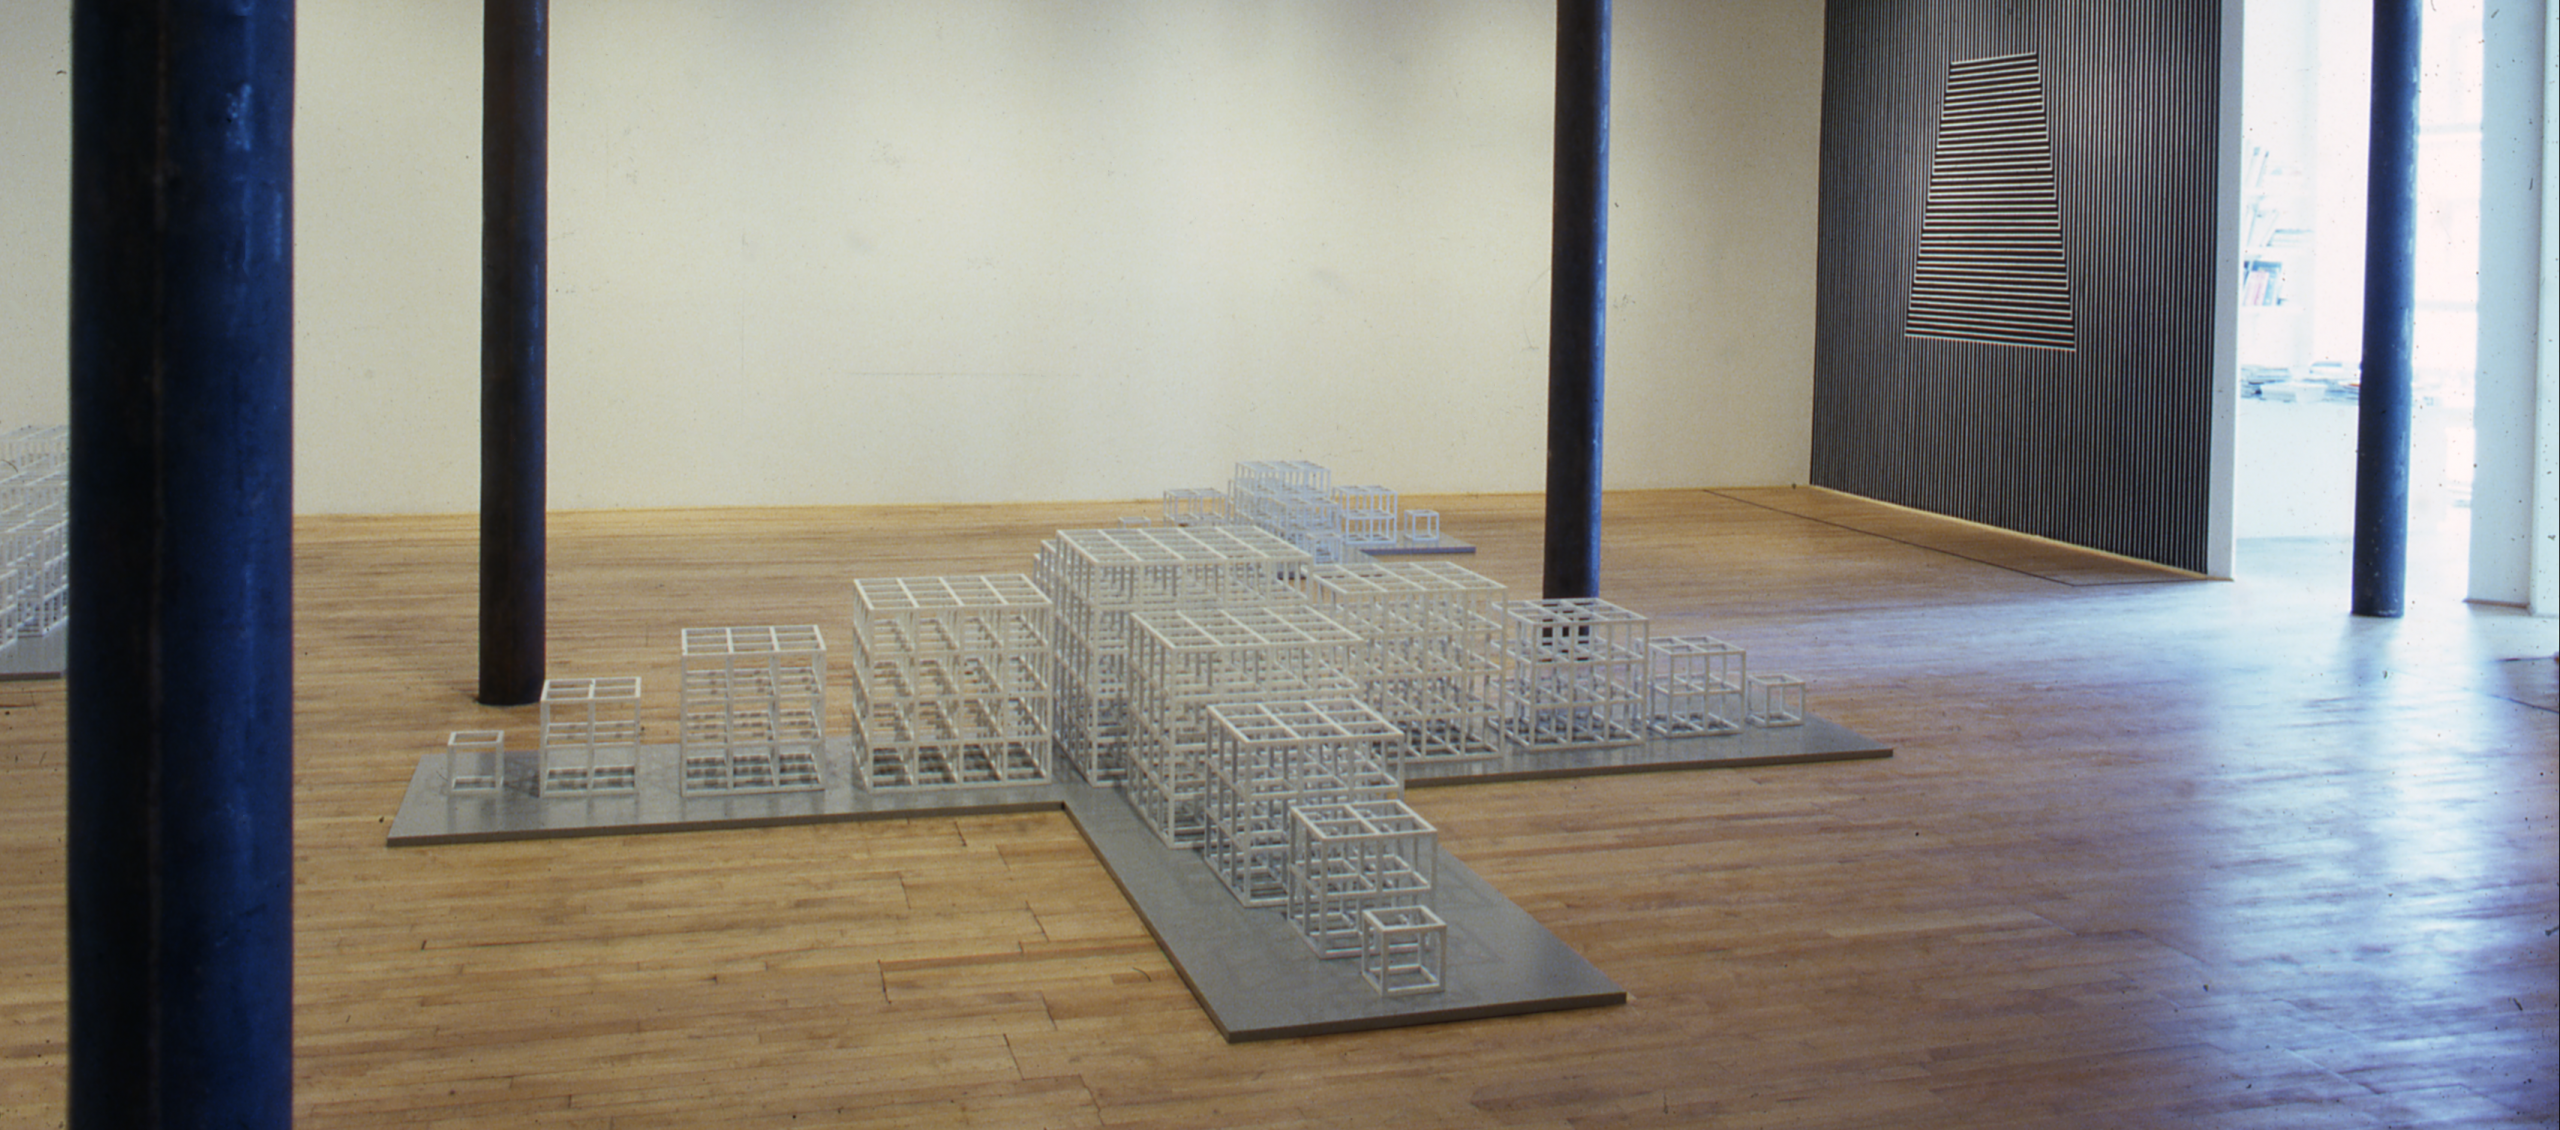 Installation view at Rhona Hoffman Gallery, Sol LeWitt, New Structures, Wall Drawing, Drawings, 1980.